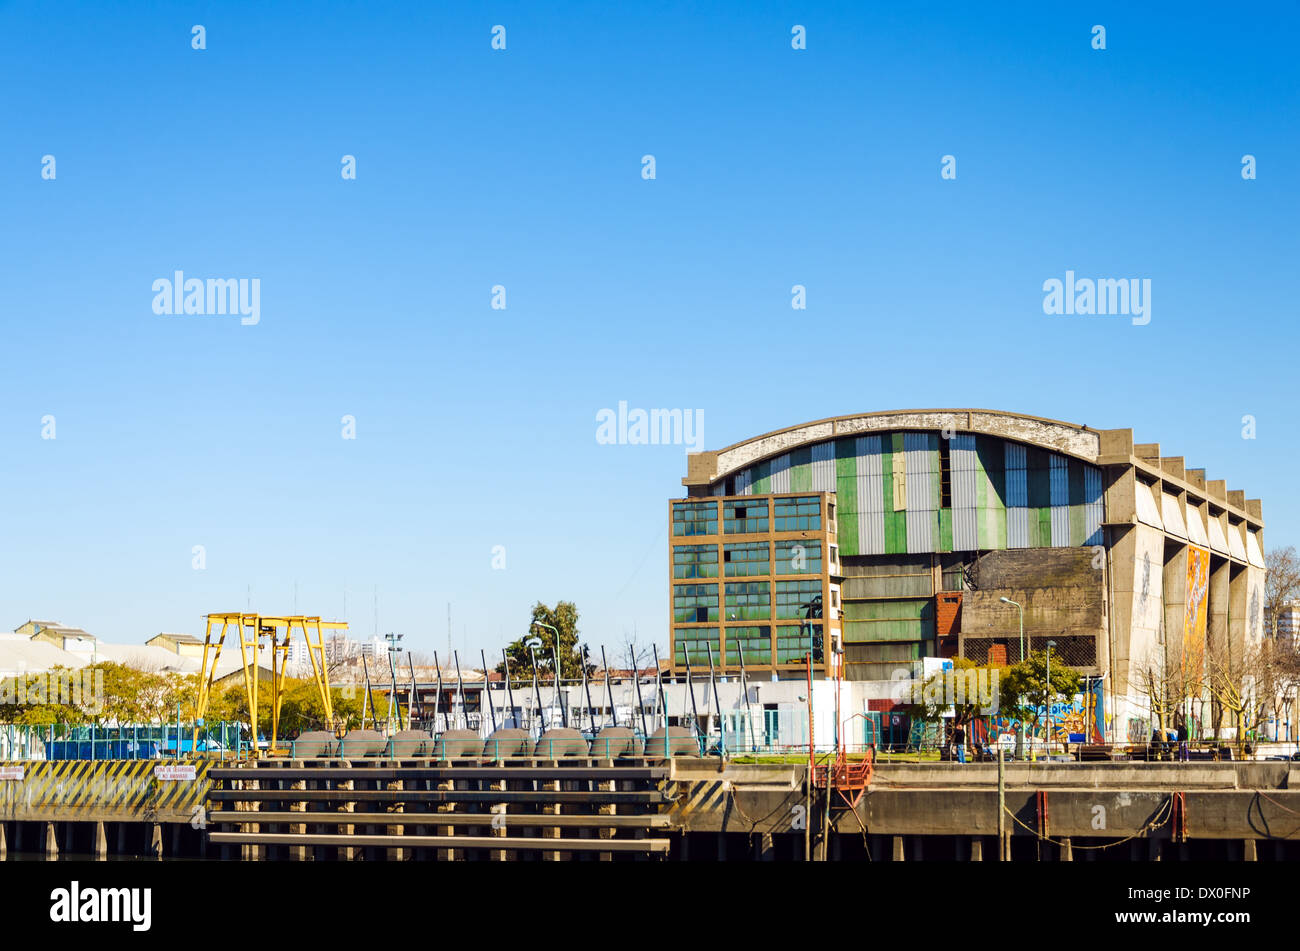 Old warehouse in La Boca neighborhood of Buenos Aires, Argentina - Stock Image